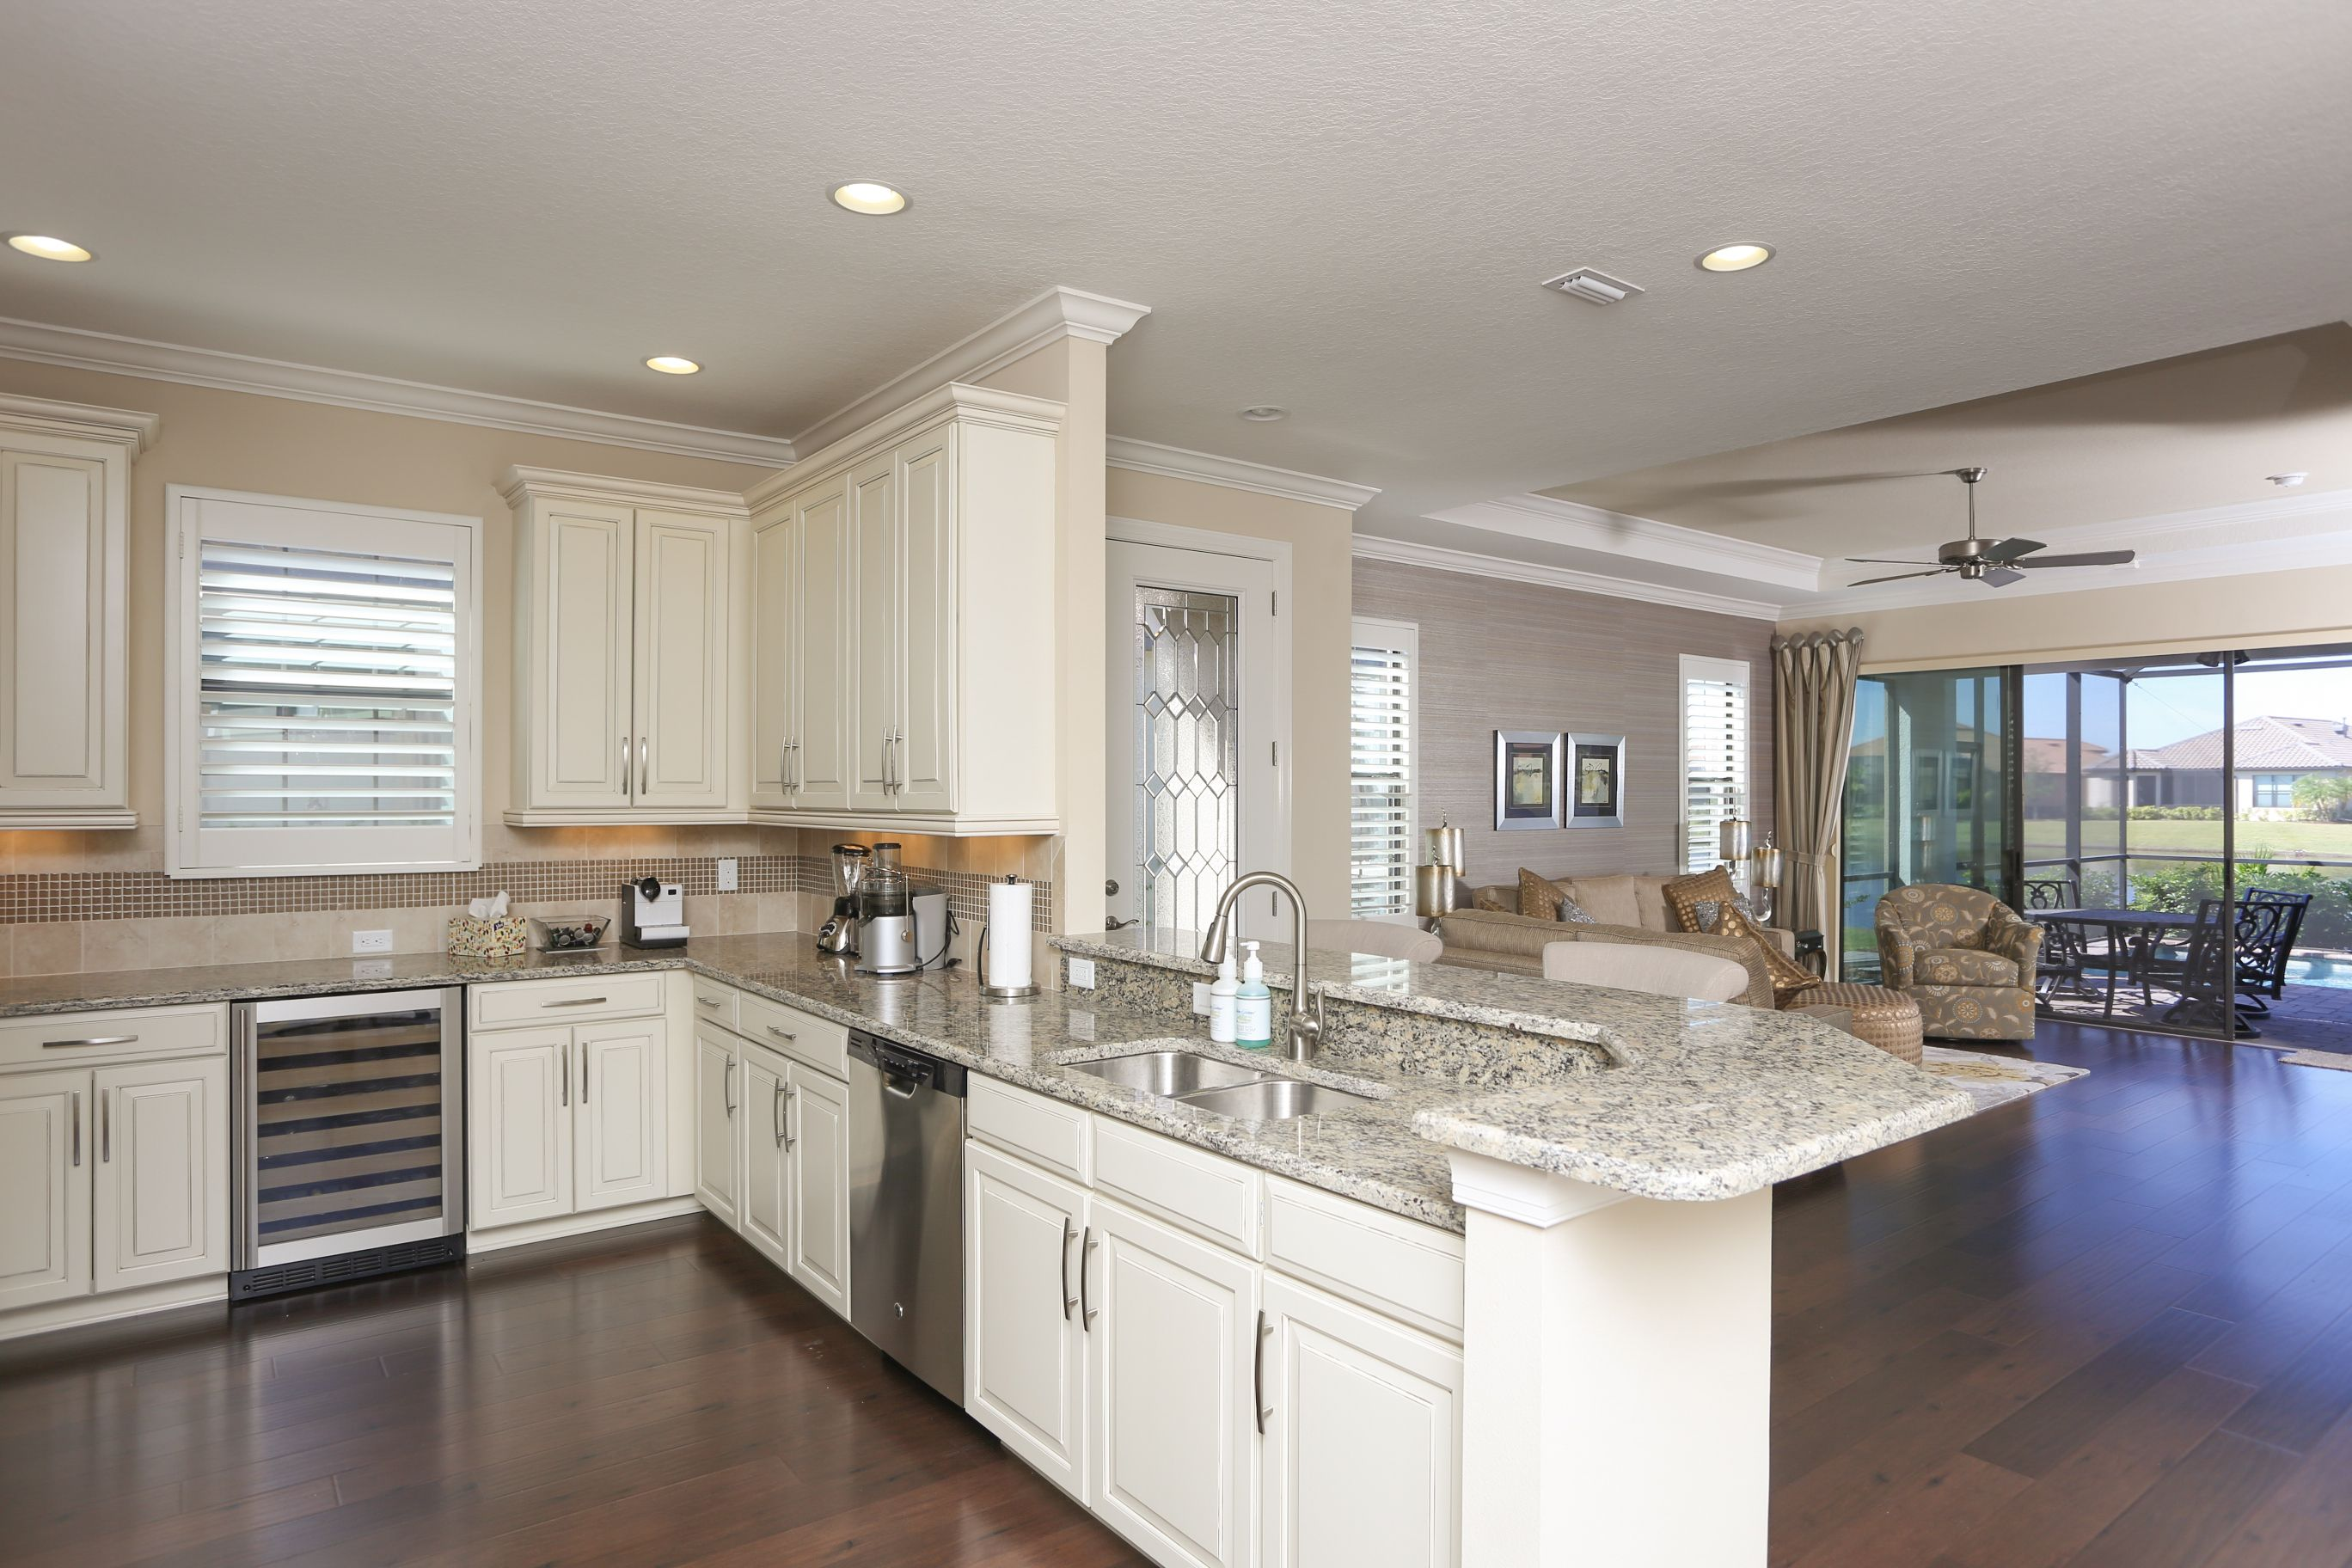 American Kitchen Cabinets Building Our Heavenly Highgrove House Options Timberlake Kitchen